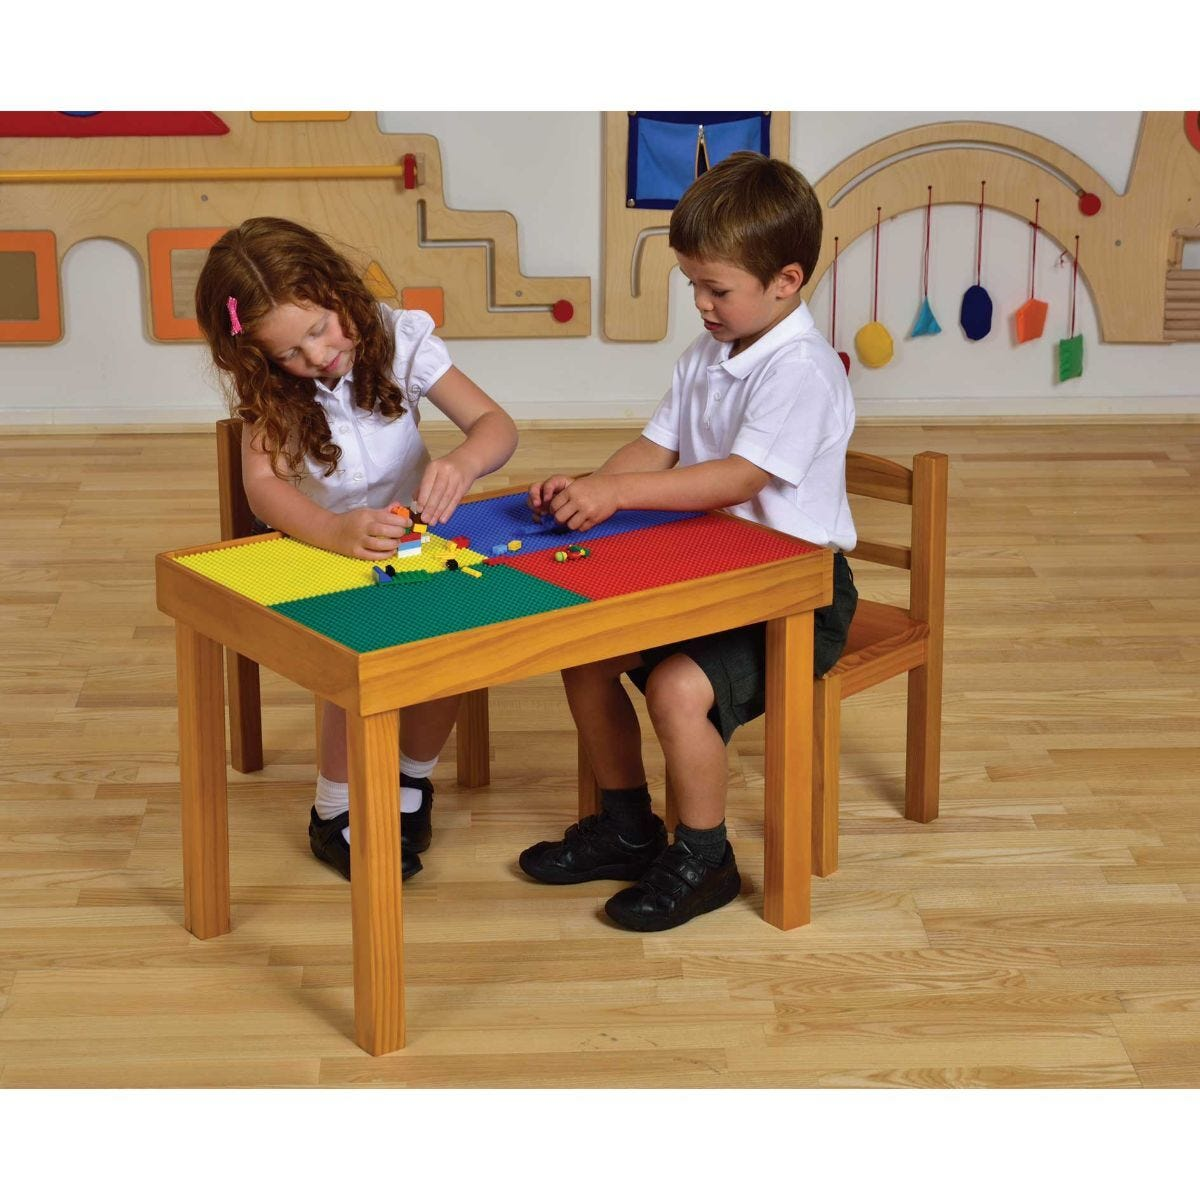 Childrens Wooden Activity Table and Chairs Set